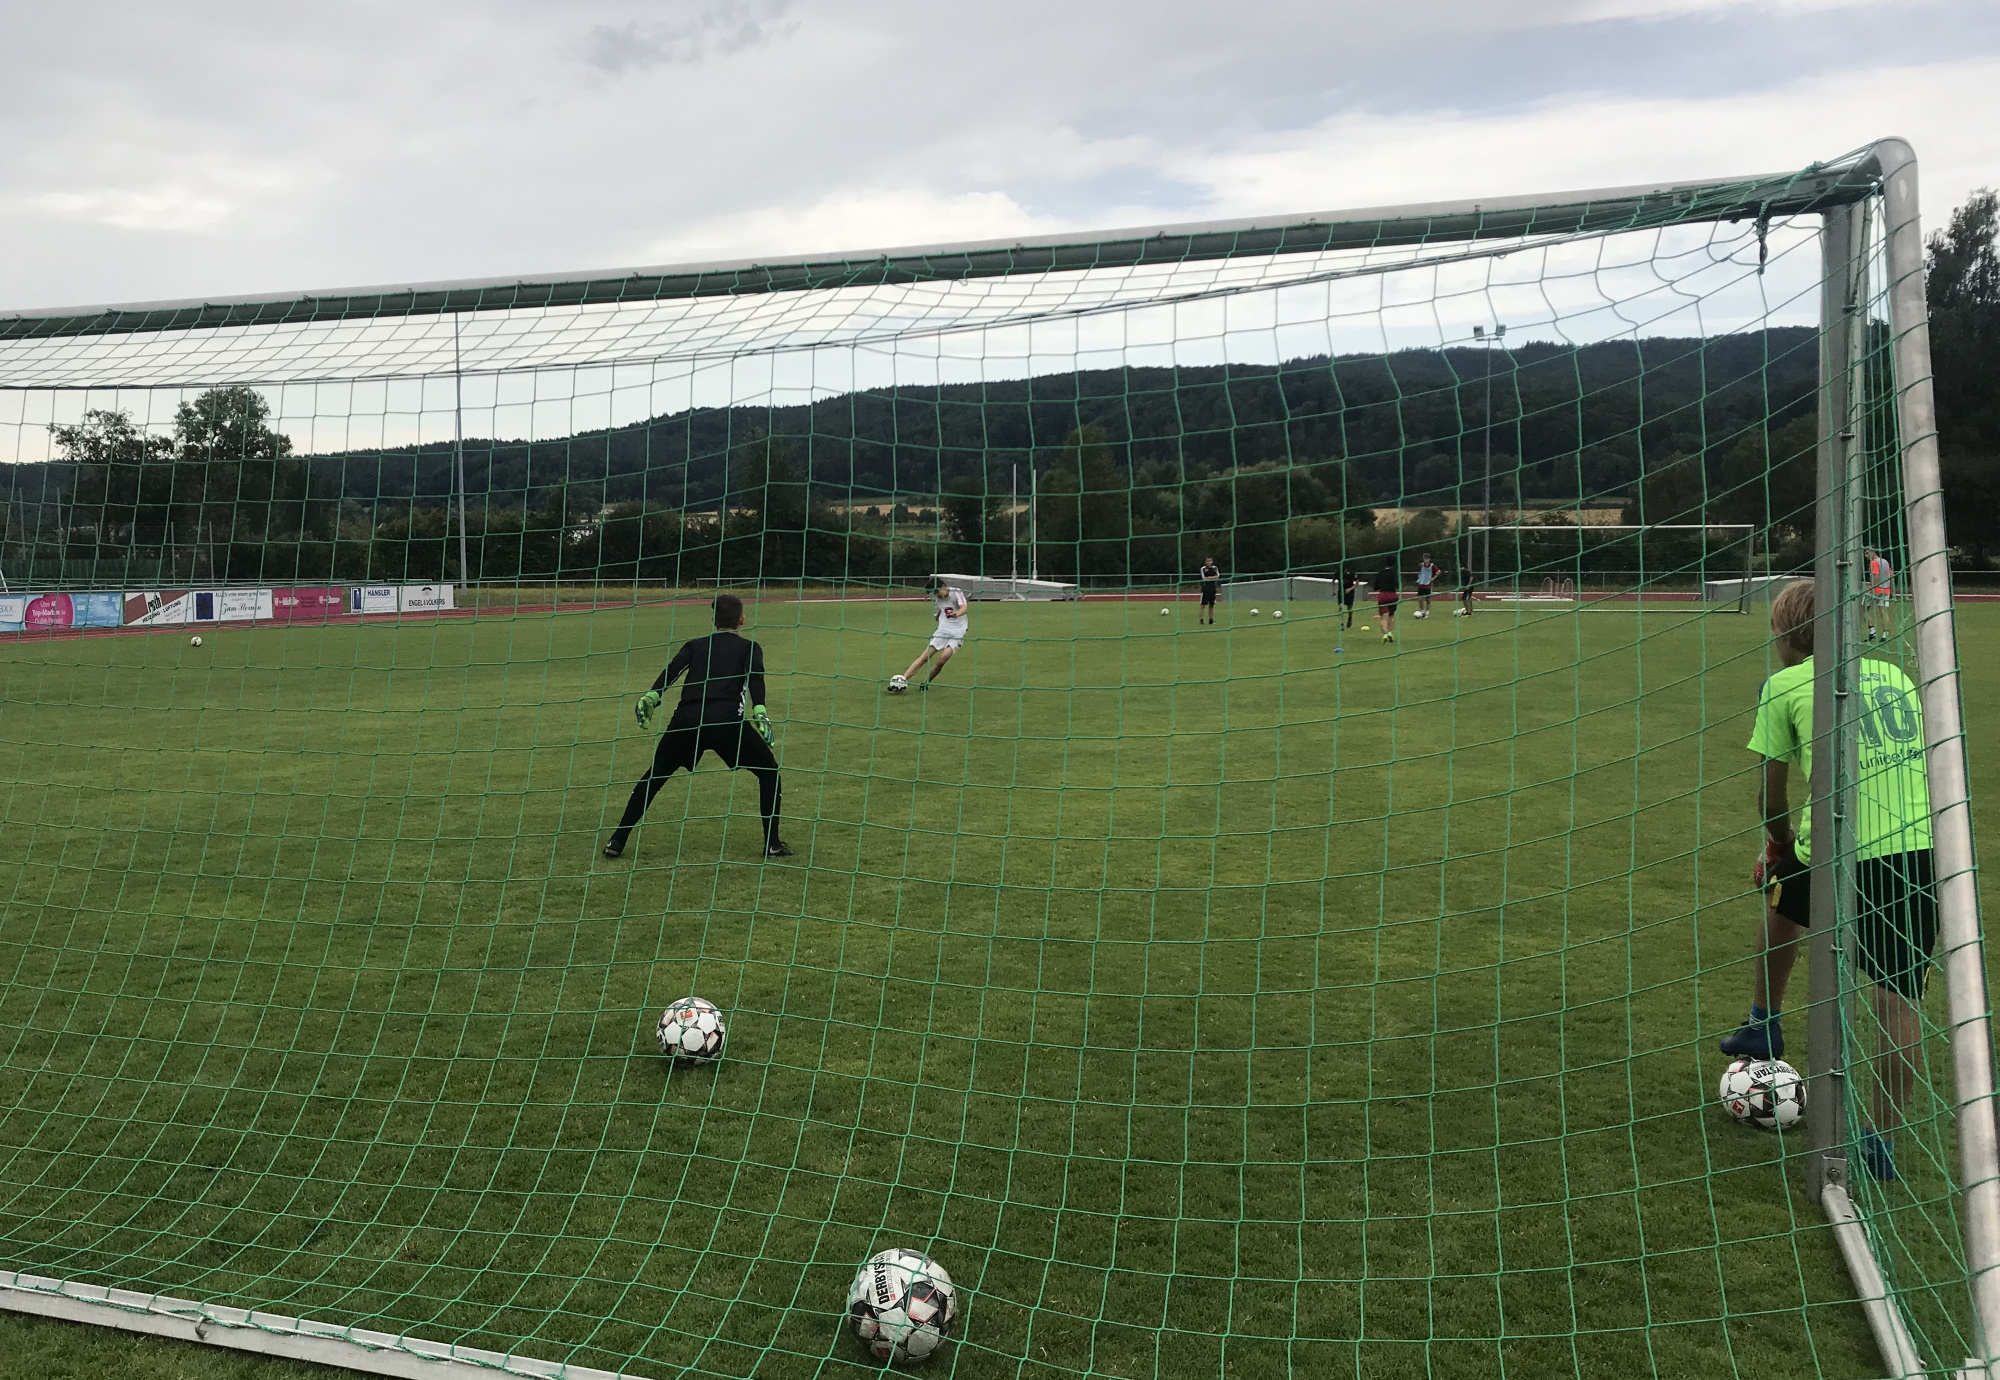 Trainingseinheit am Samstagmorgen